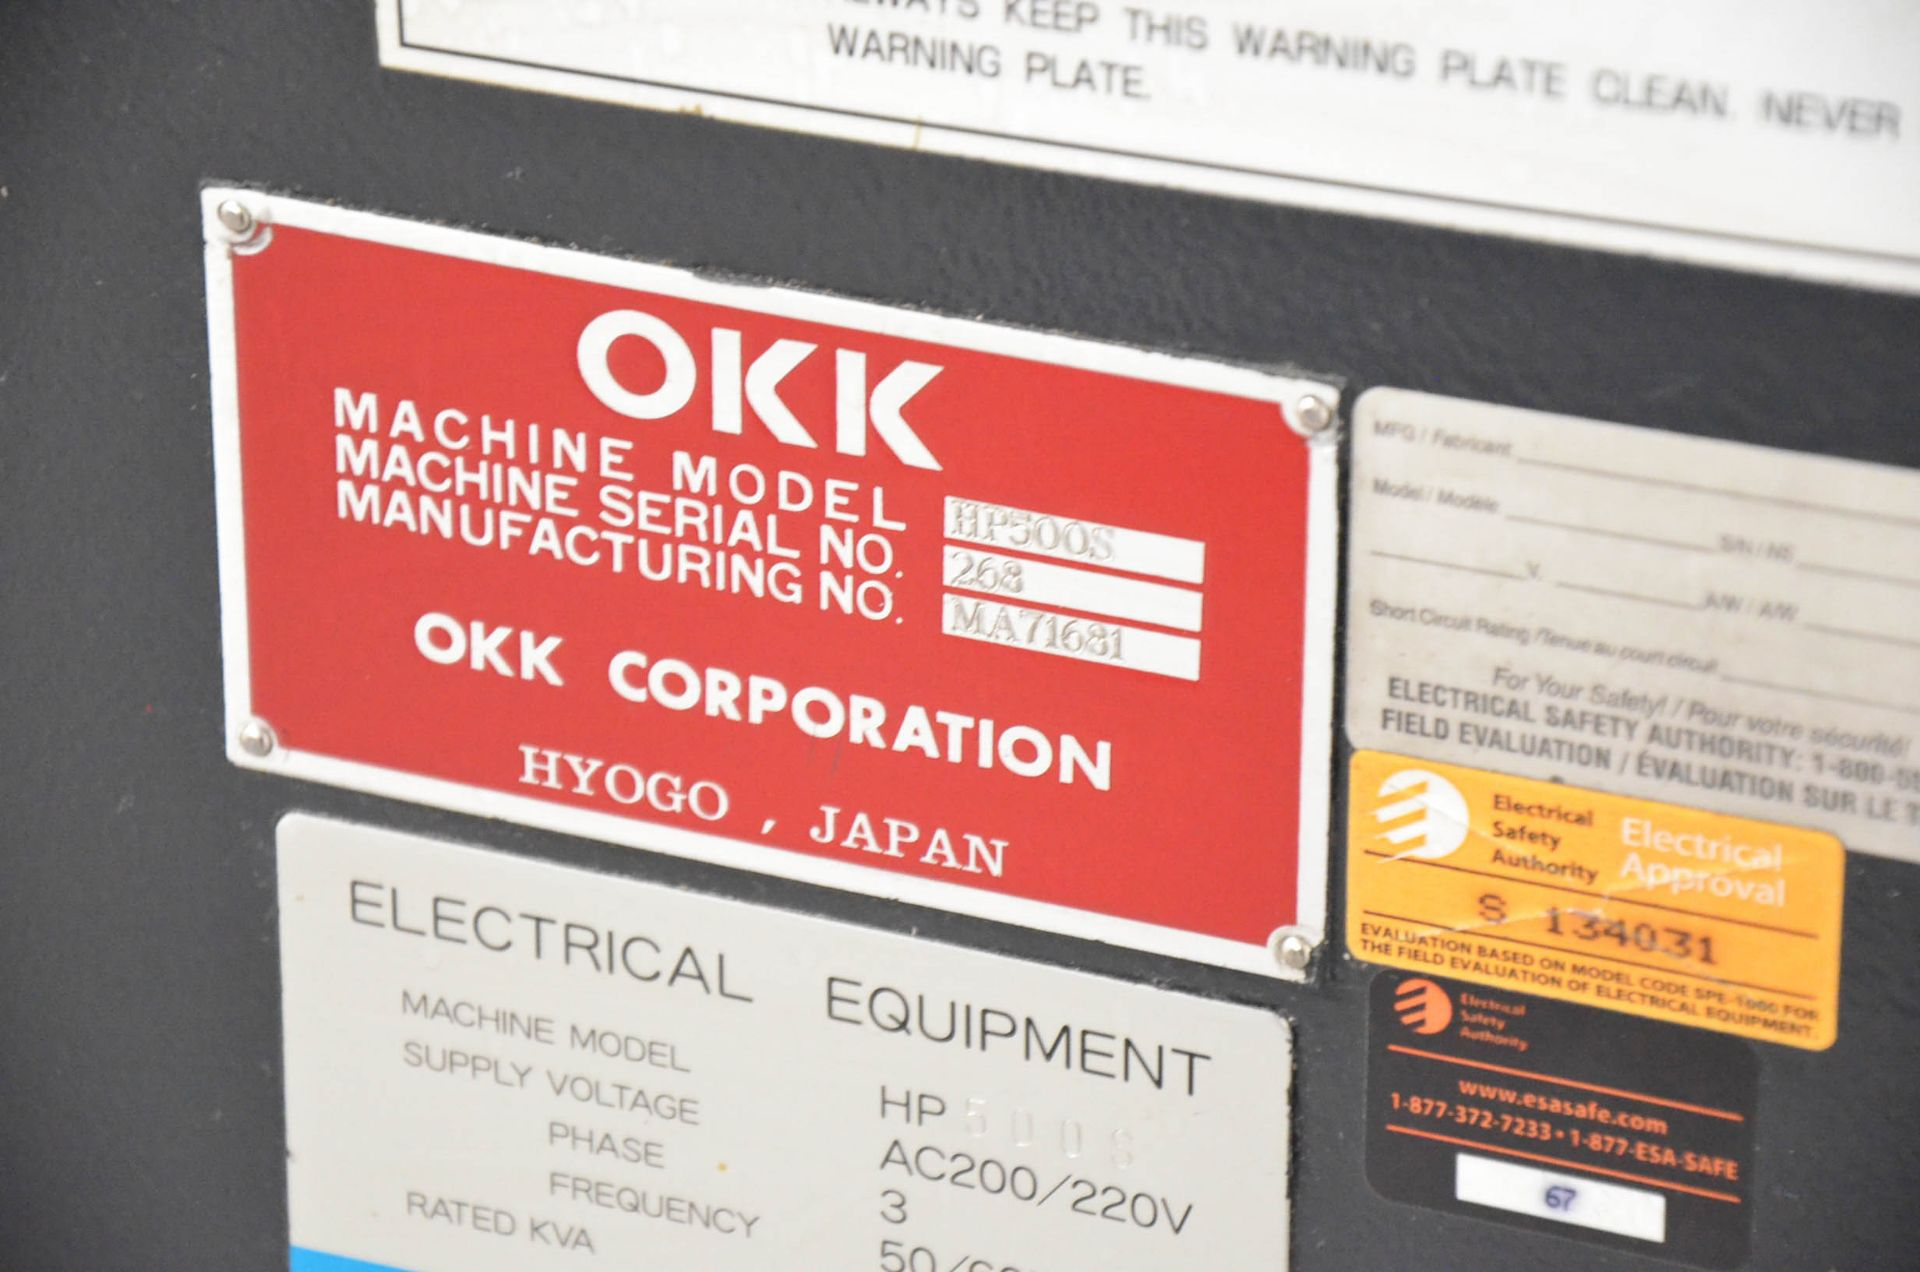 OKK (2006) HP500S TWIN-PALLET CNC HORIZONTAL MACHINING CENTER WITH FANUC 180I S-MB CNC CONTROL, 19. - Image 5 of 5